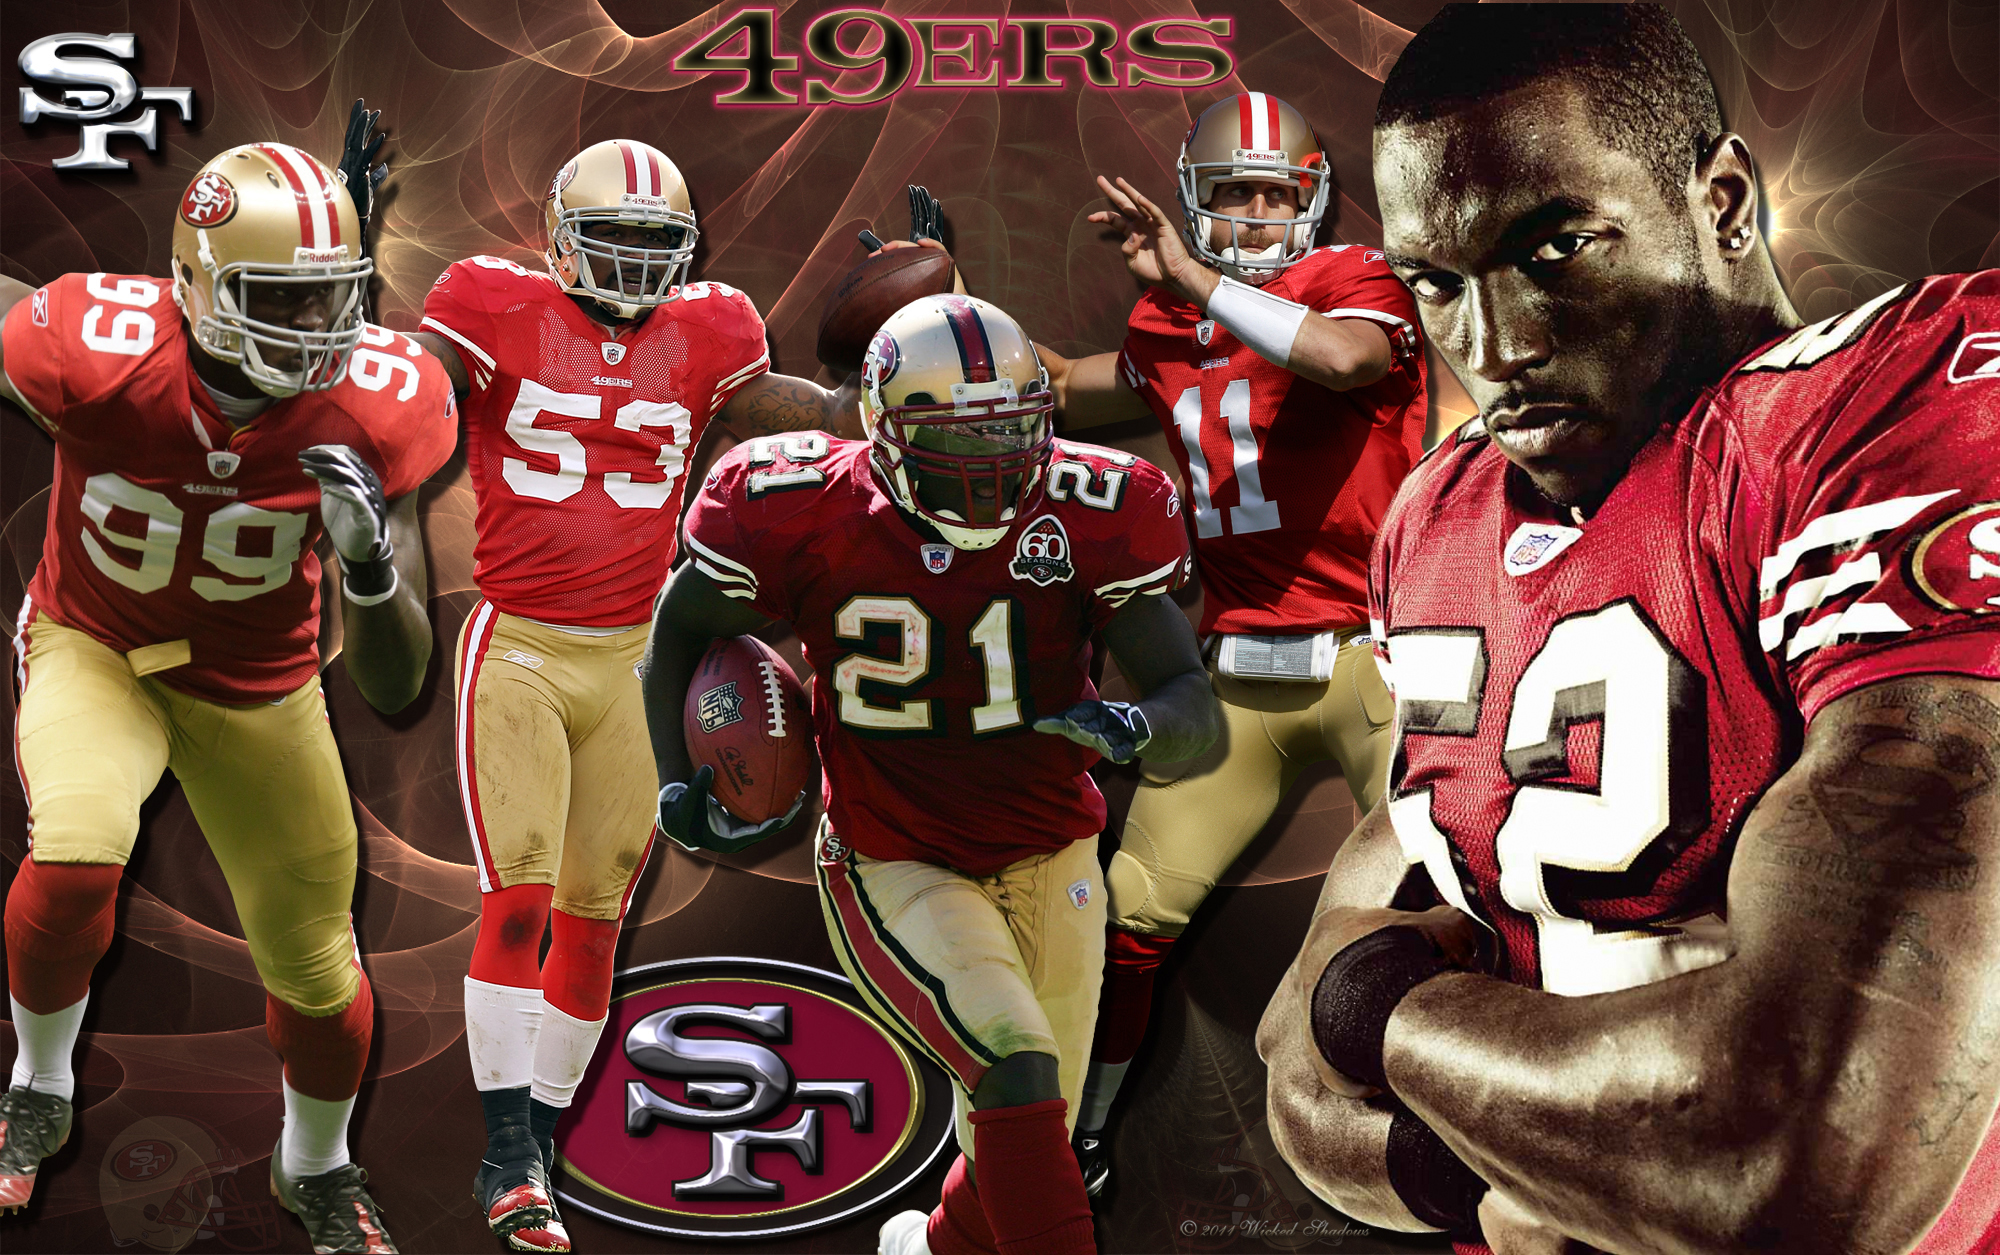 Wallpapers by wicked shadows san francisco 49ers team wallpaper 4x3 standard 16x9 widescreen 16x10 widescreen san francisco 49ers team wallpaper voltagebd Gallery